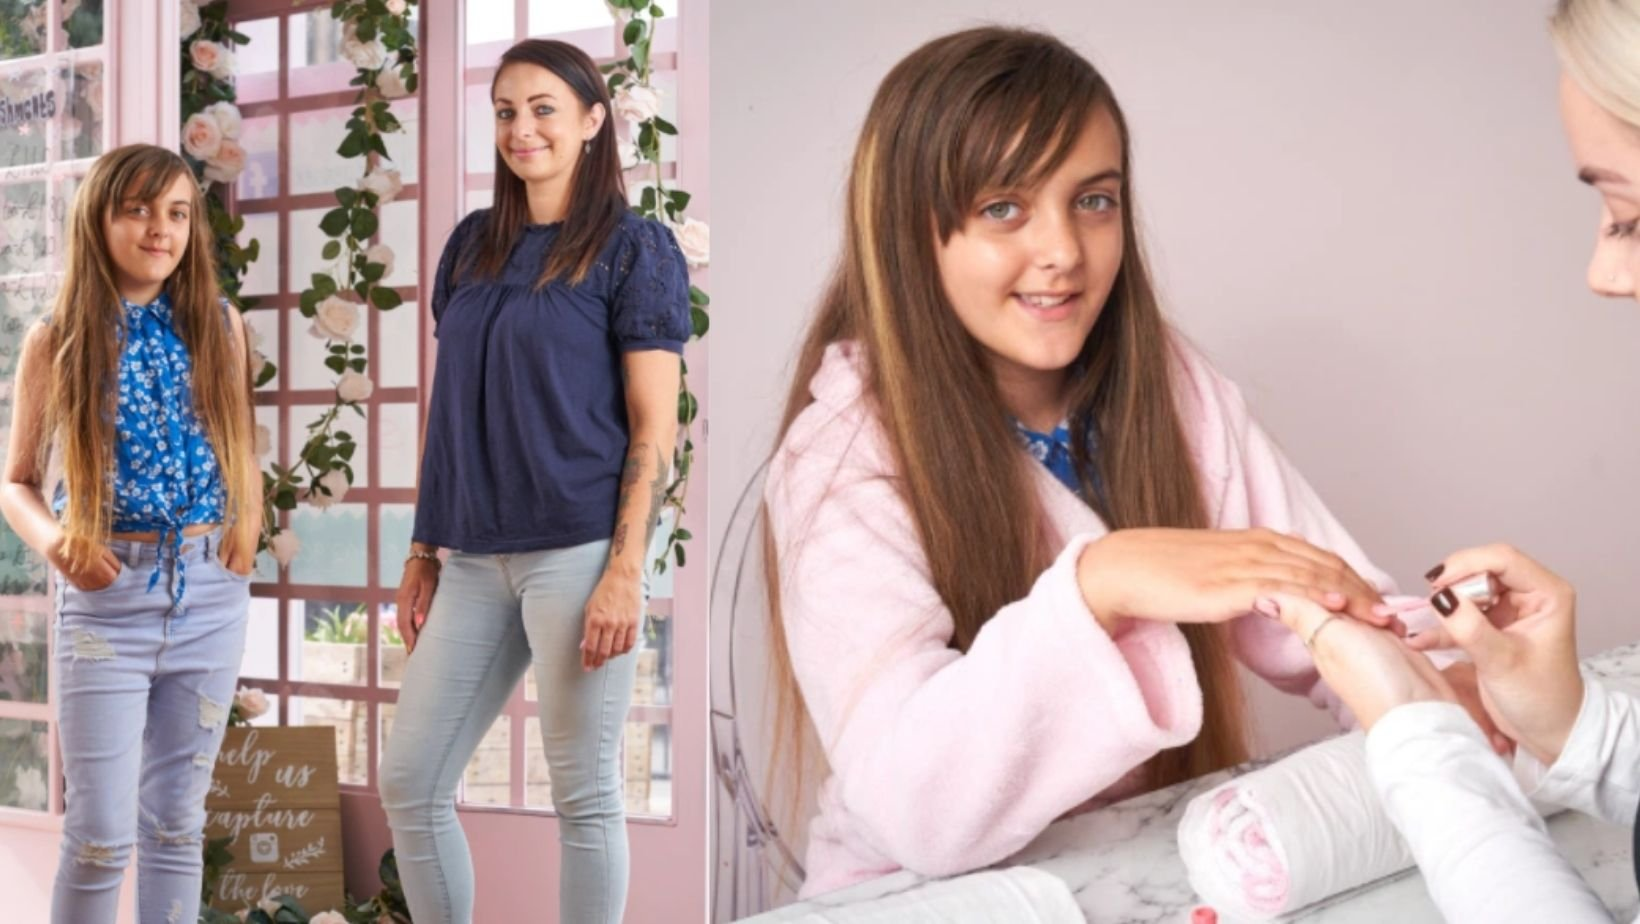 small joys thumbnail 13.jpg?resize=1200,630 - Mother Is Spending Hundreds Of Money For 12-Y.O Daughter's Monthly Spa Visits, Arguing That Teaching Kids About Self Care Is VERY Important